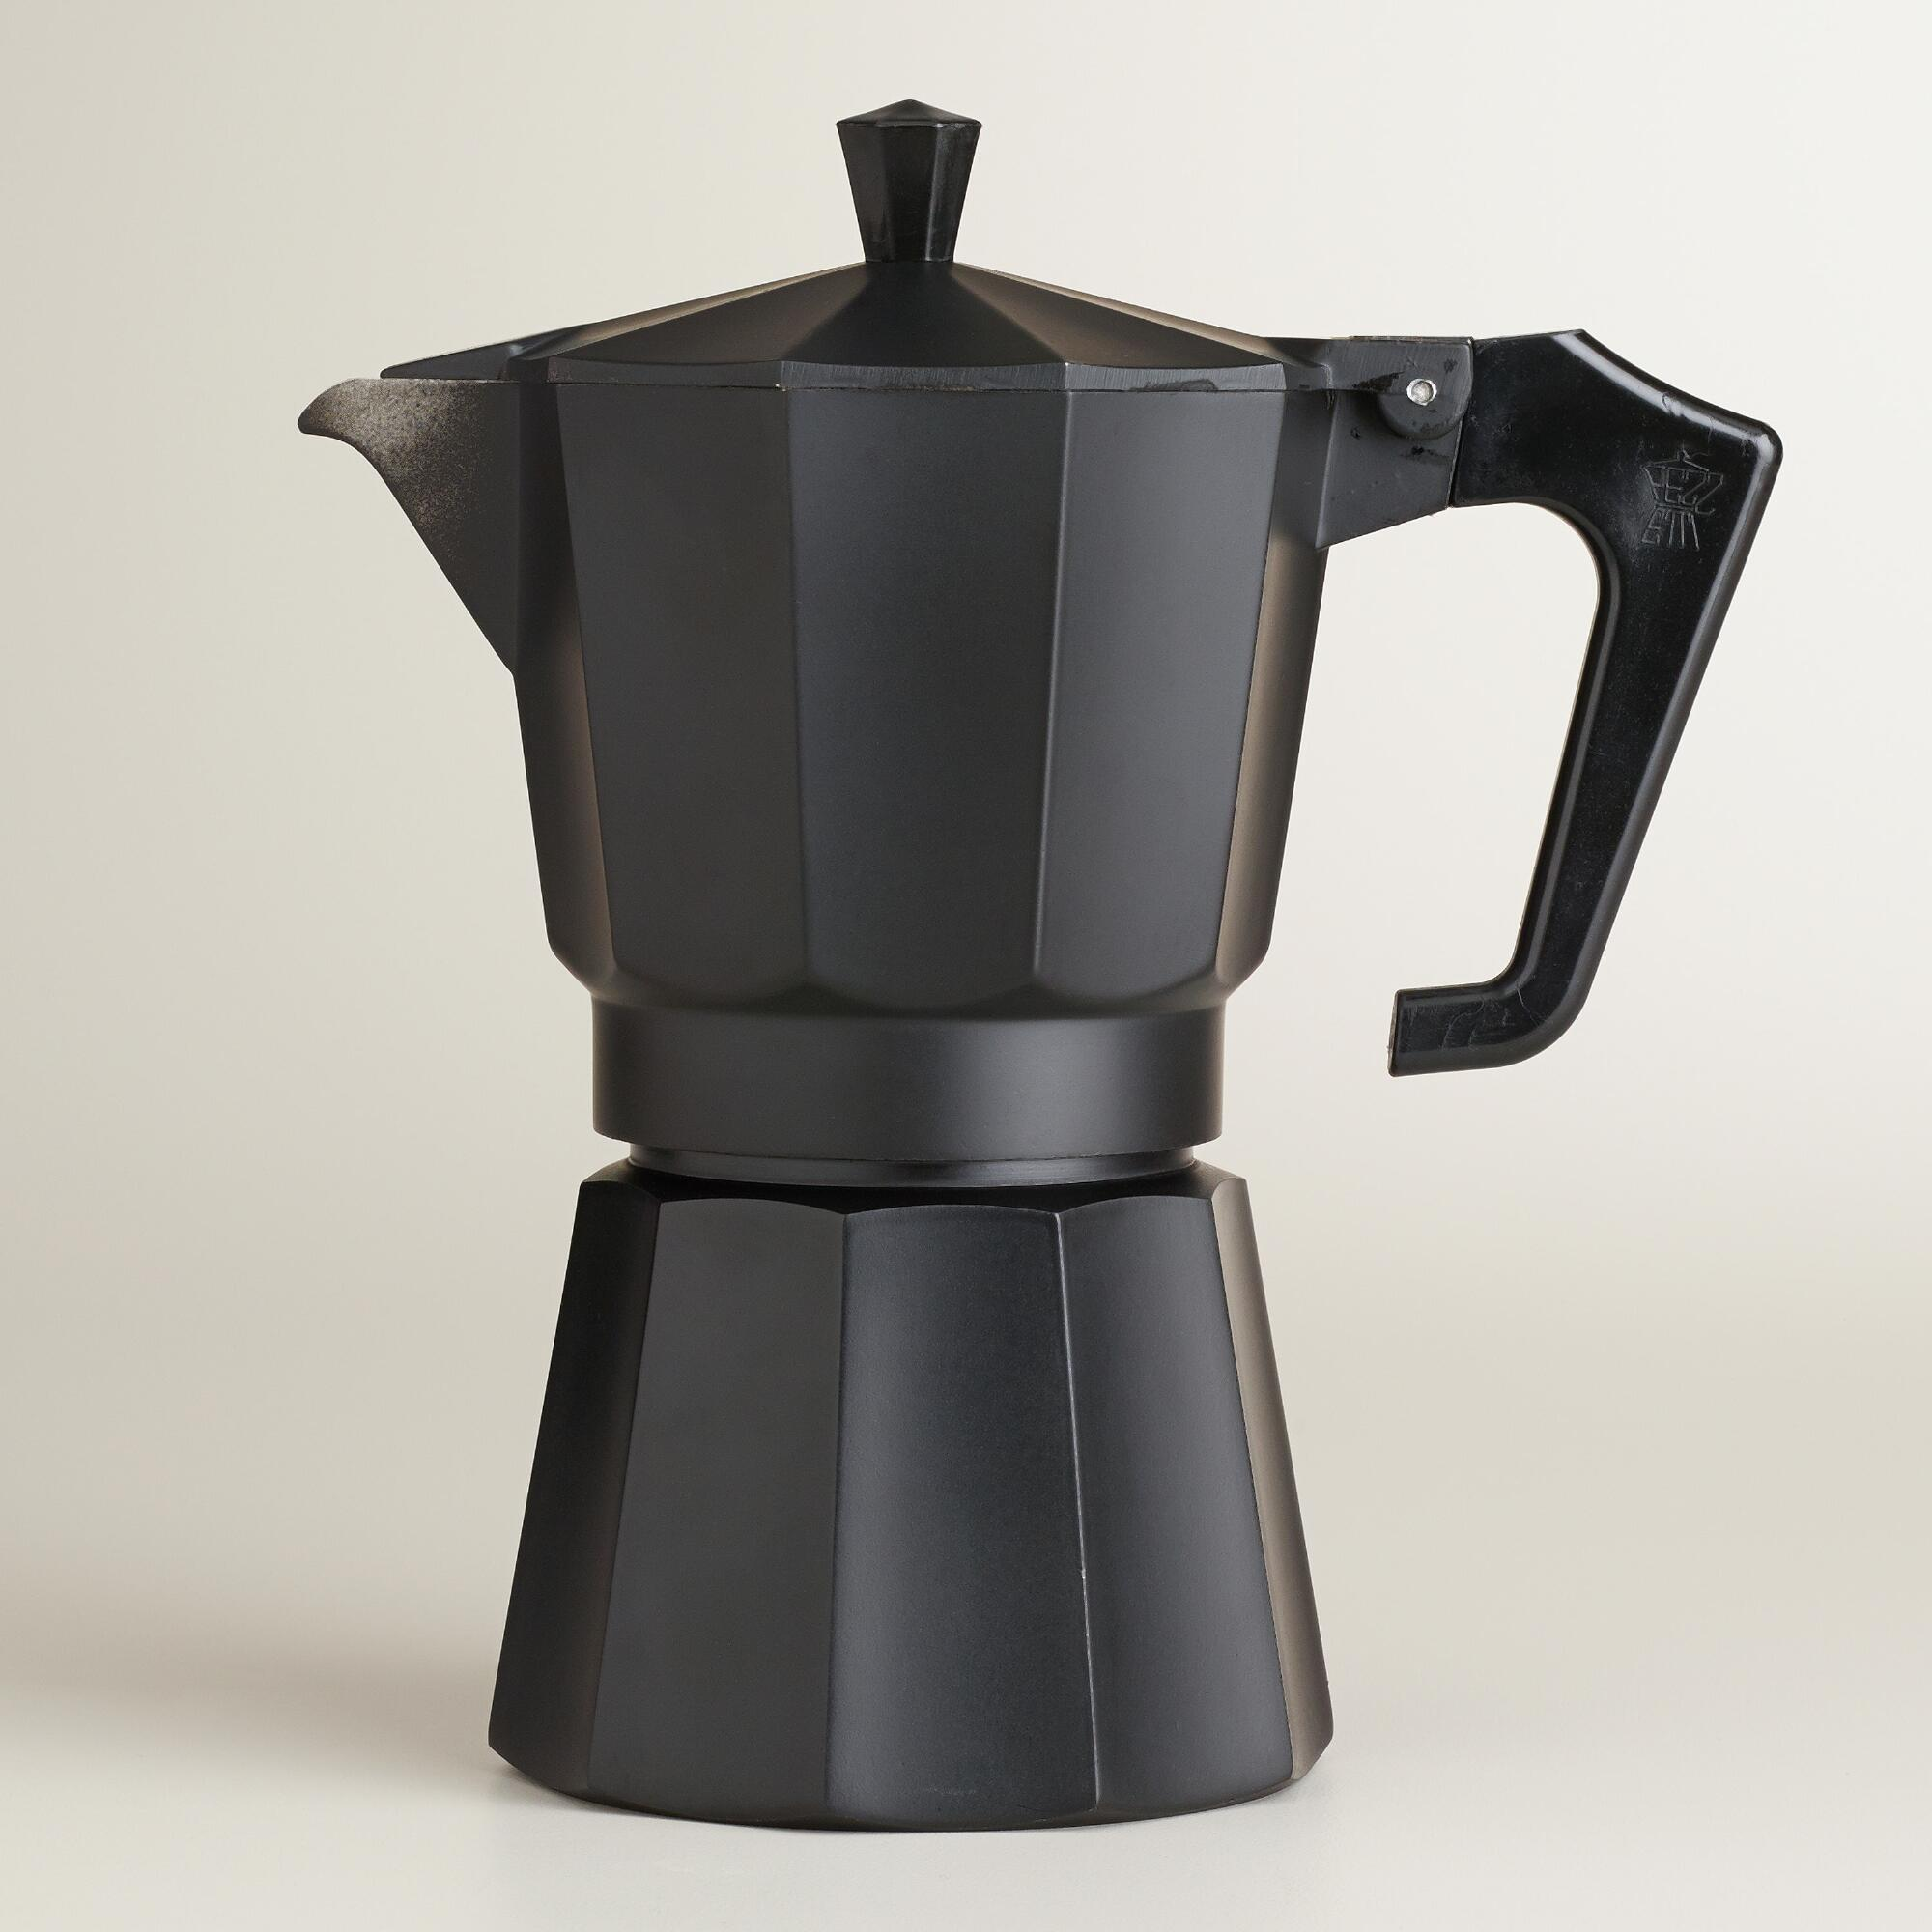 How to brew perfect coffee using a Moka Pot video